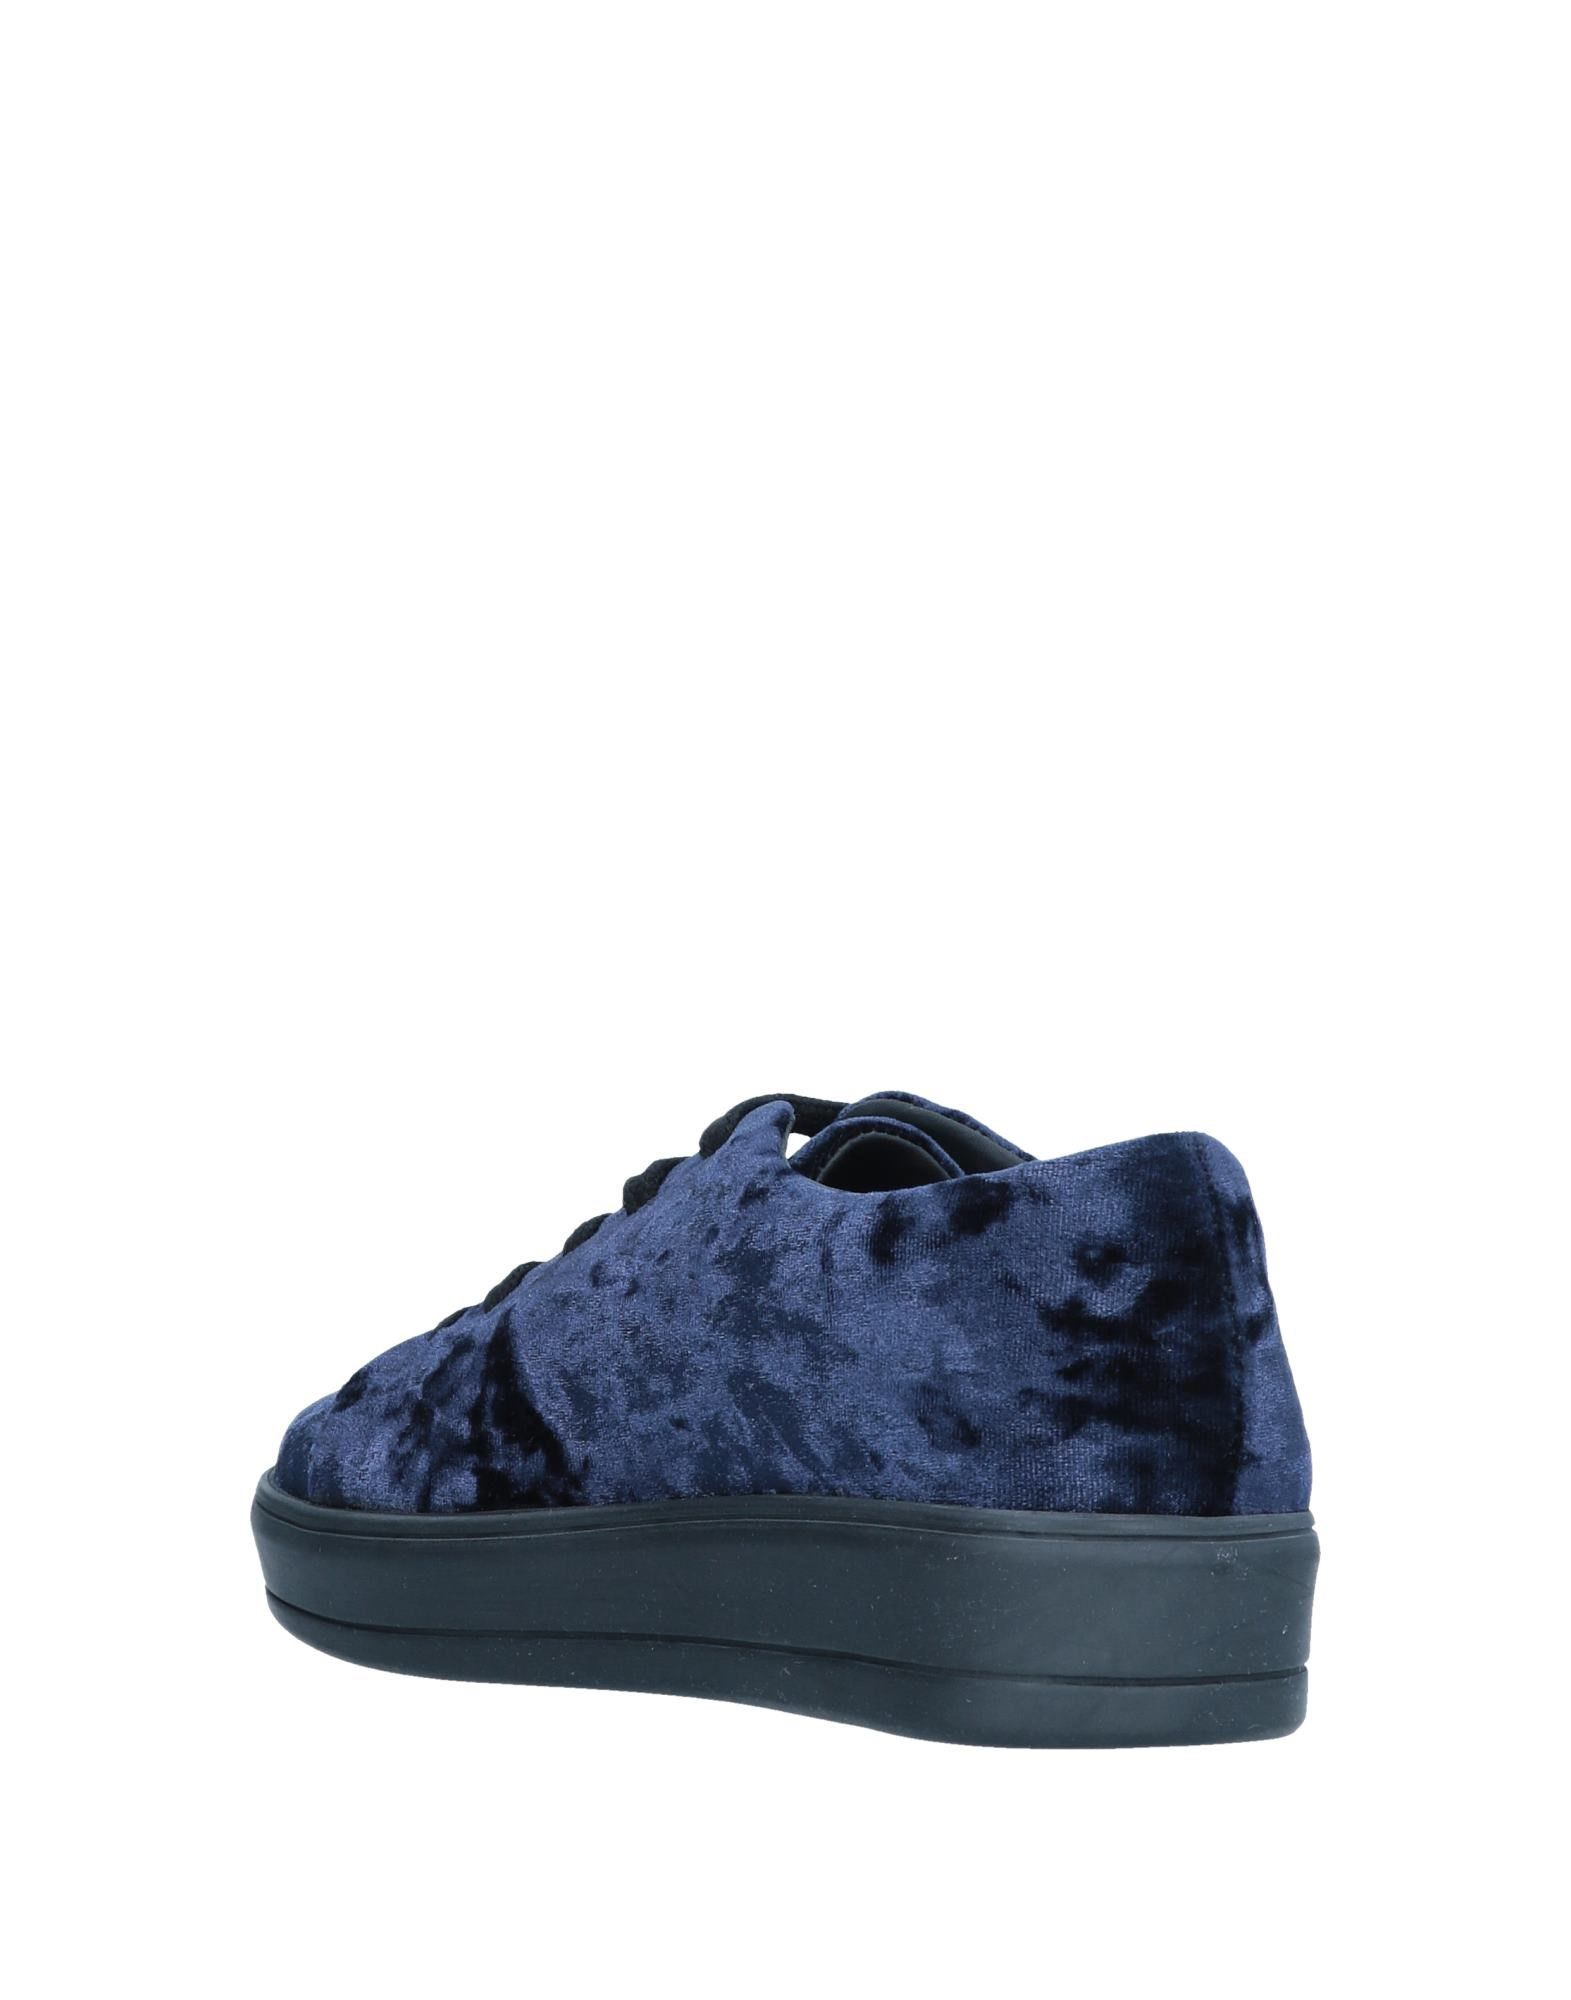 Stilvolle billige Sneakers Schuhe Paul & Joe Sneakers billige Damen  11549719KI 92e12a